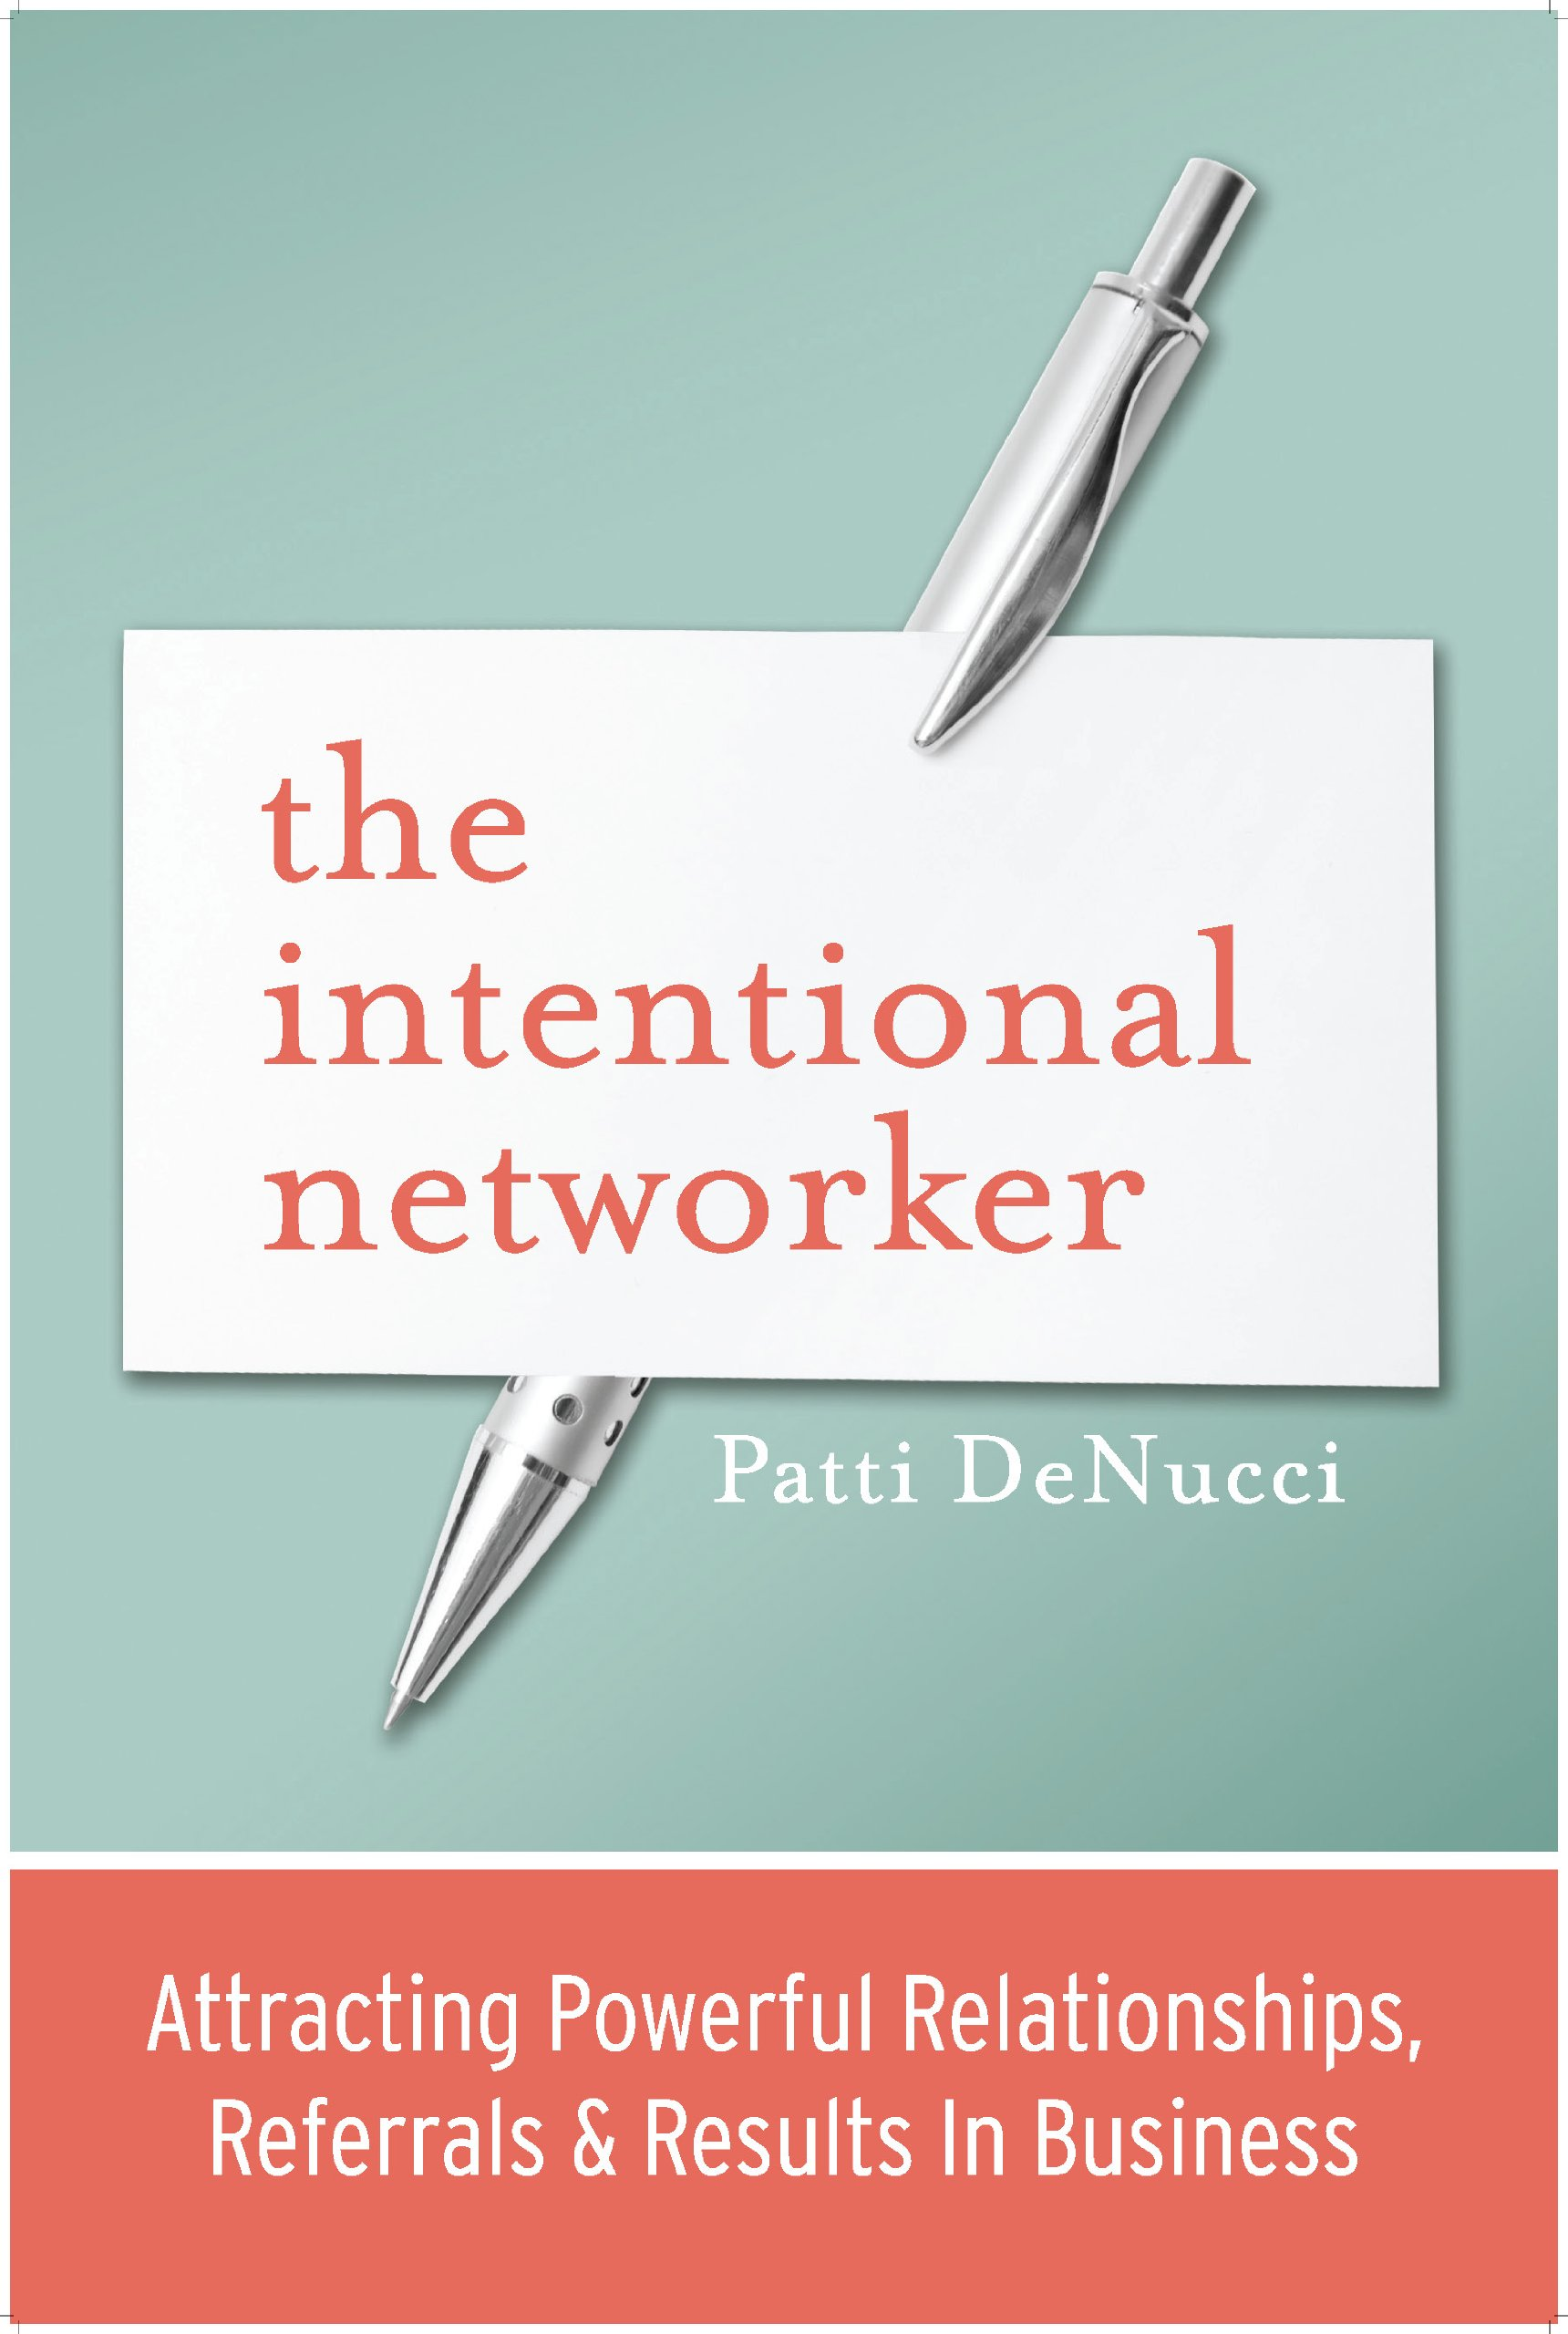 The Intentional Networker – Attracting more relationships, referrals & results in business